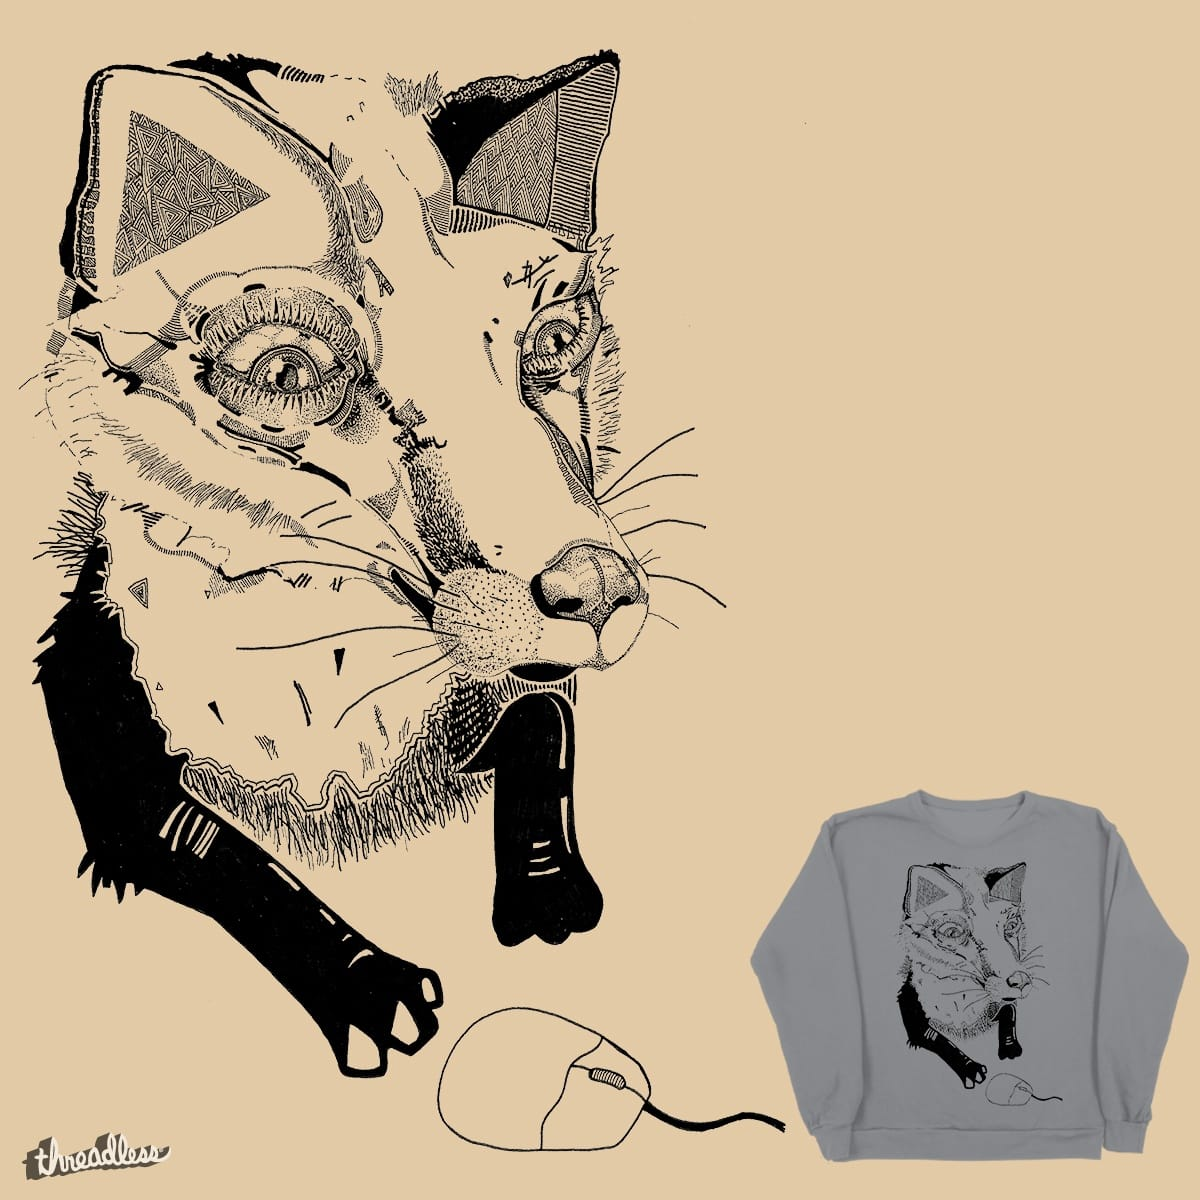 Fox Chasing a Mouse  by thelindenforest on Threadless